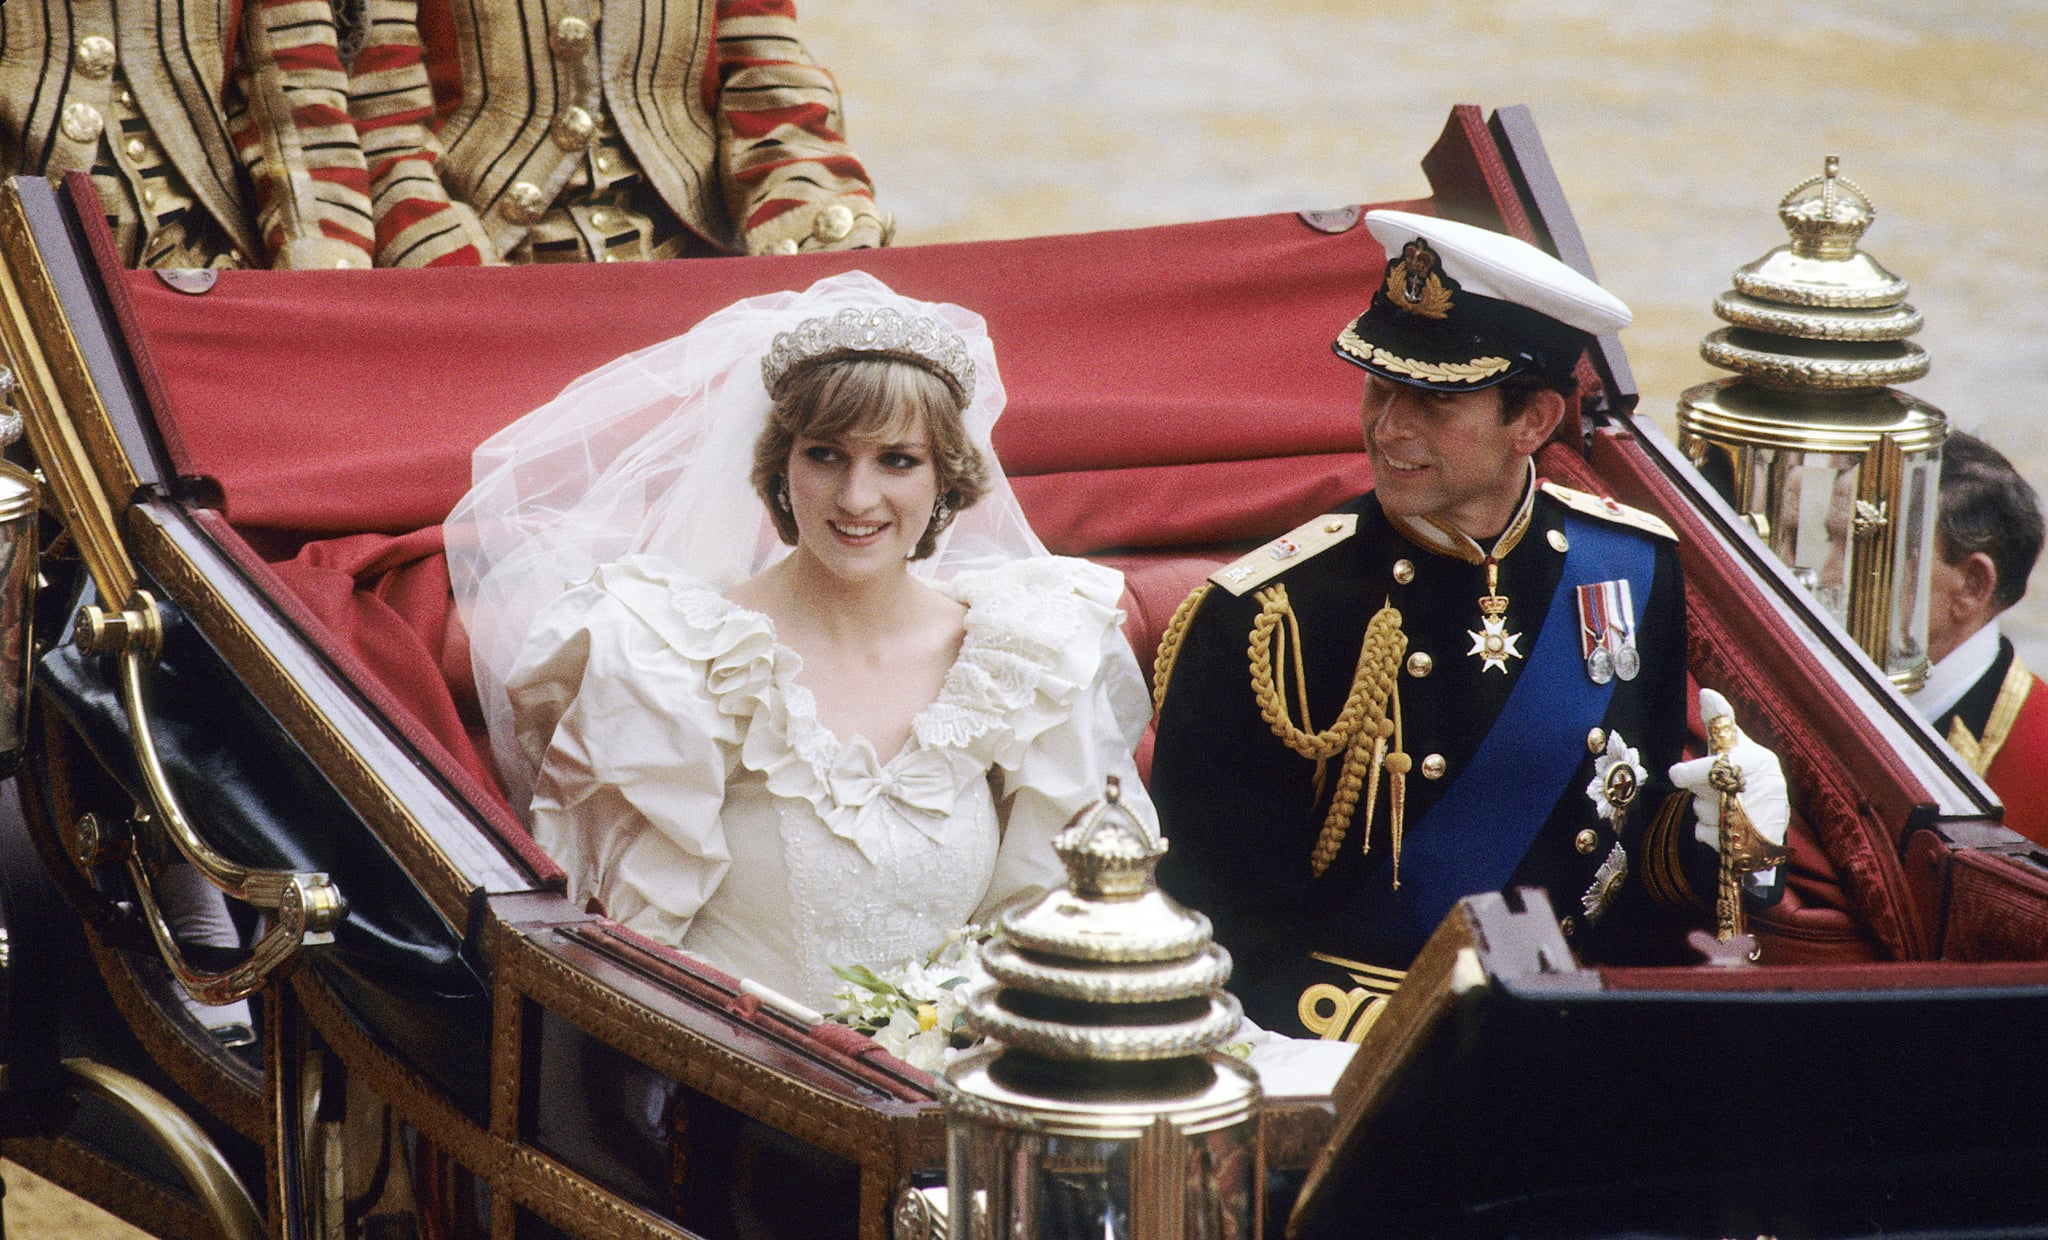 Diana And Charles Wedding.Princess Diana And Prince Charles Wedding Facts Popsugar